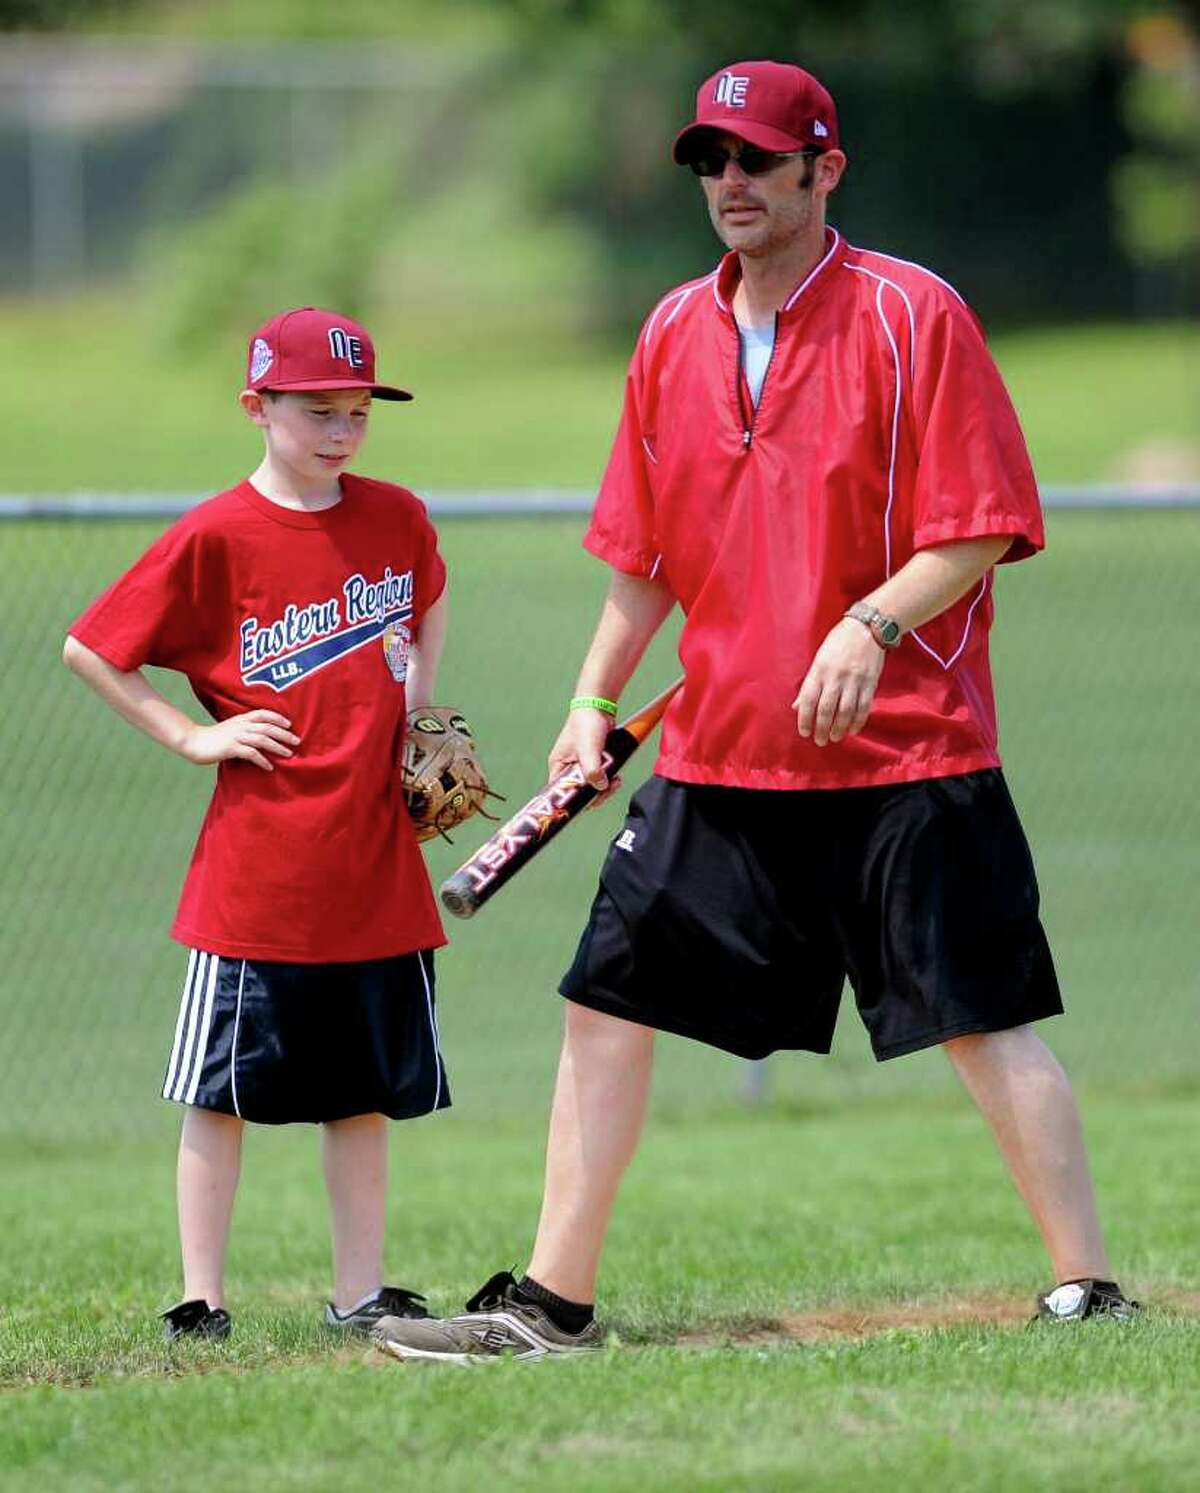 Fairfield American coach Larry Klein gives his son, Nate, some pointers during practice on Thursday, August 19, 2010.